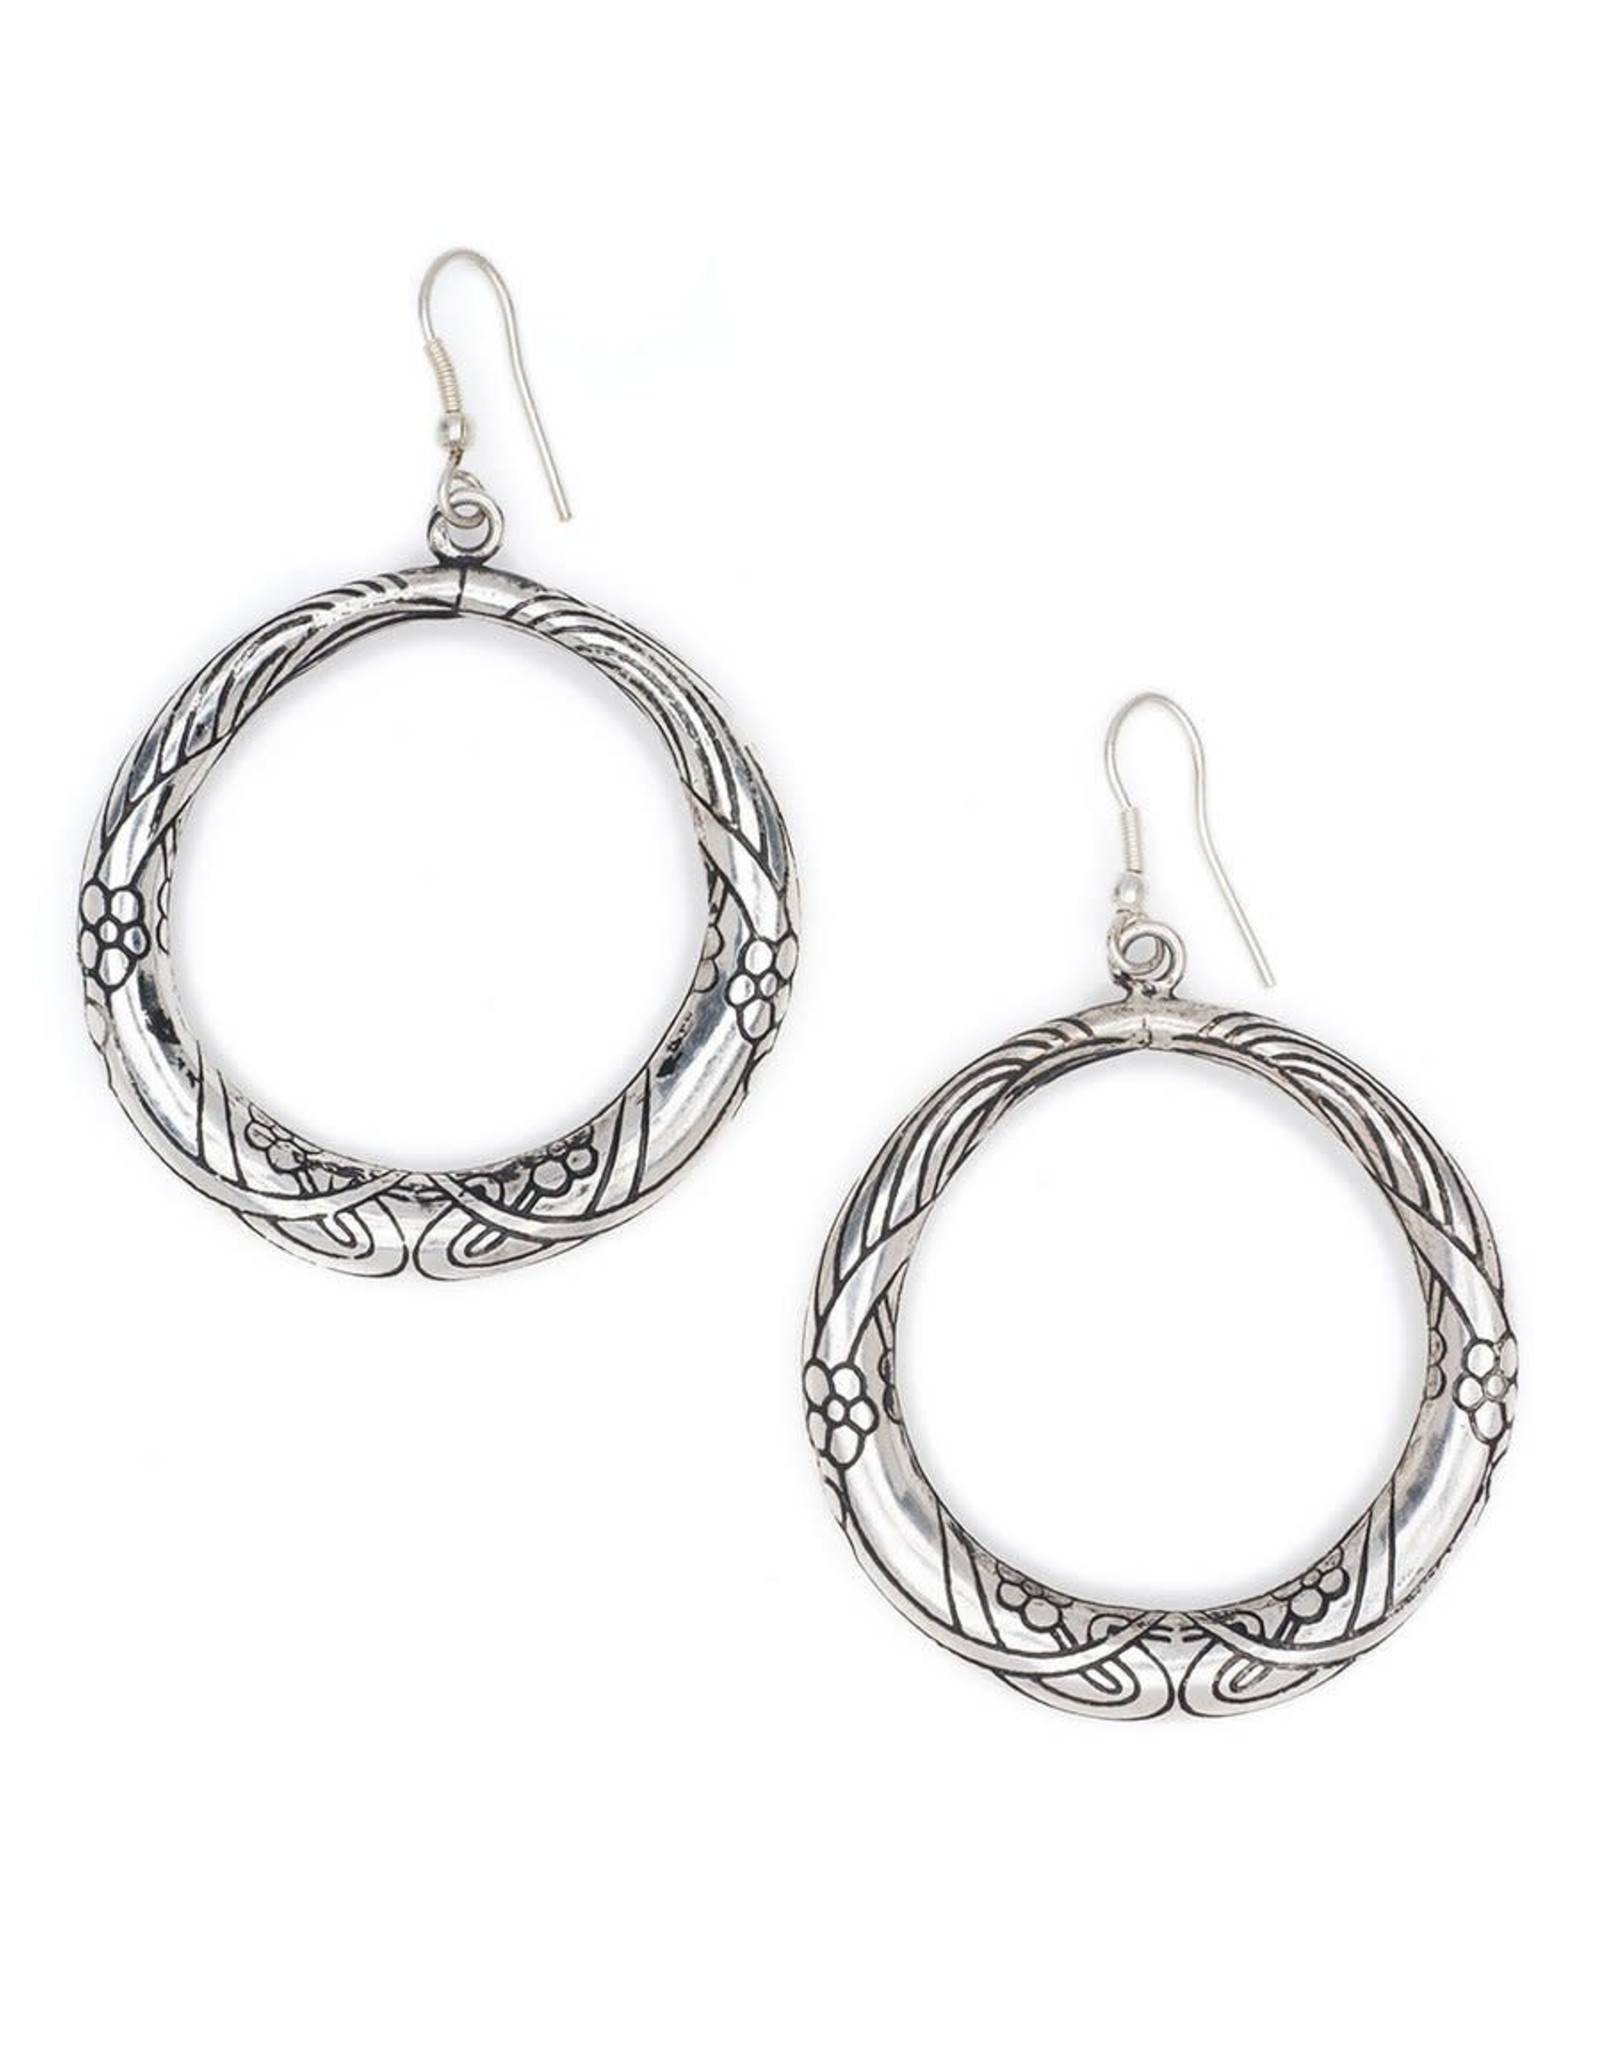 Matr Boomie Selene hoop earrings- silver